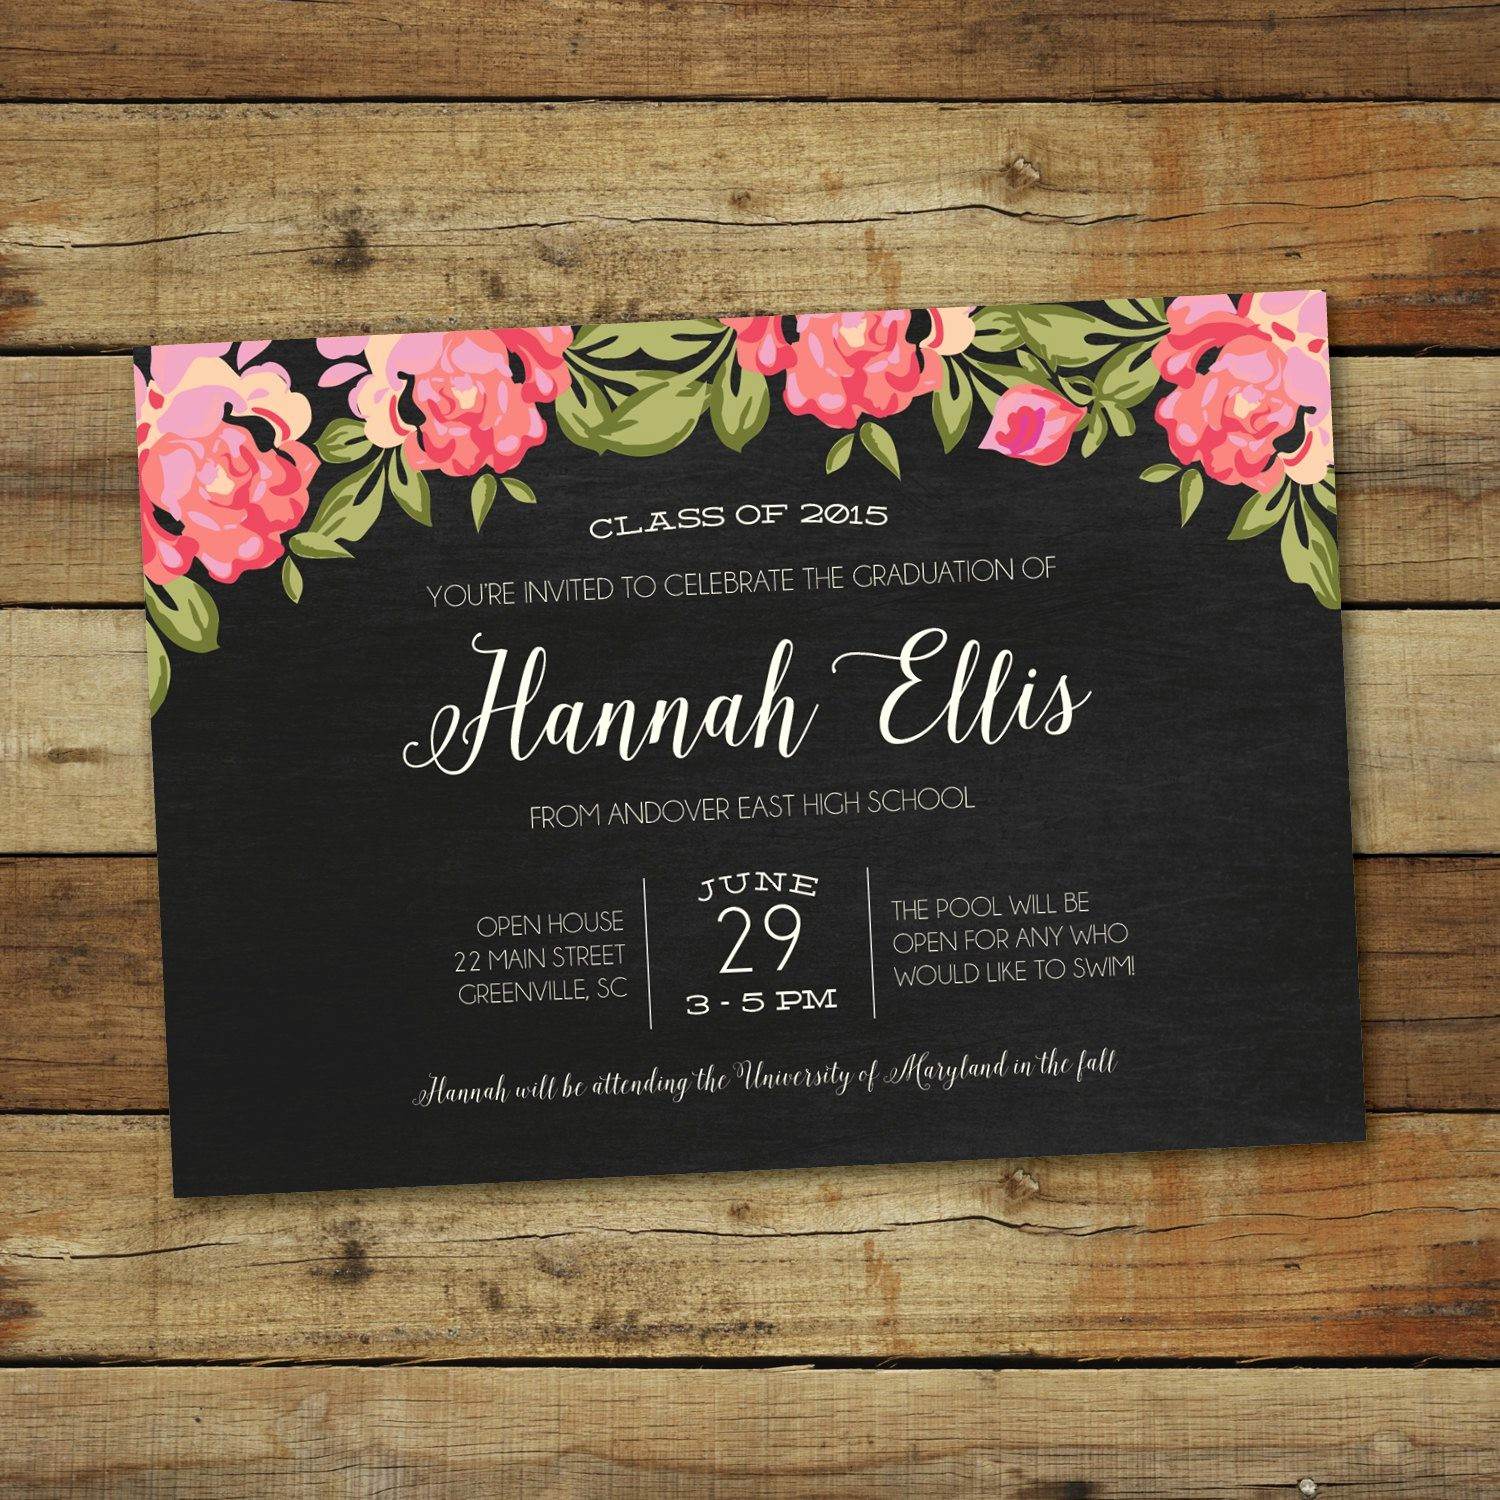 Template for Graduation Party Invitation Beautiful Graduation Invitation Graduation Invitation Templates